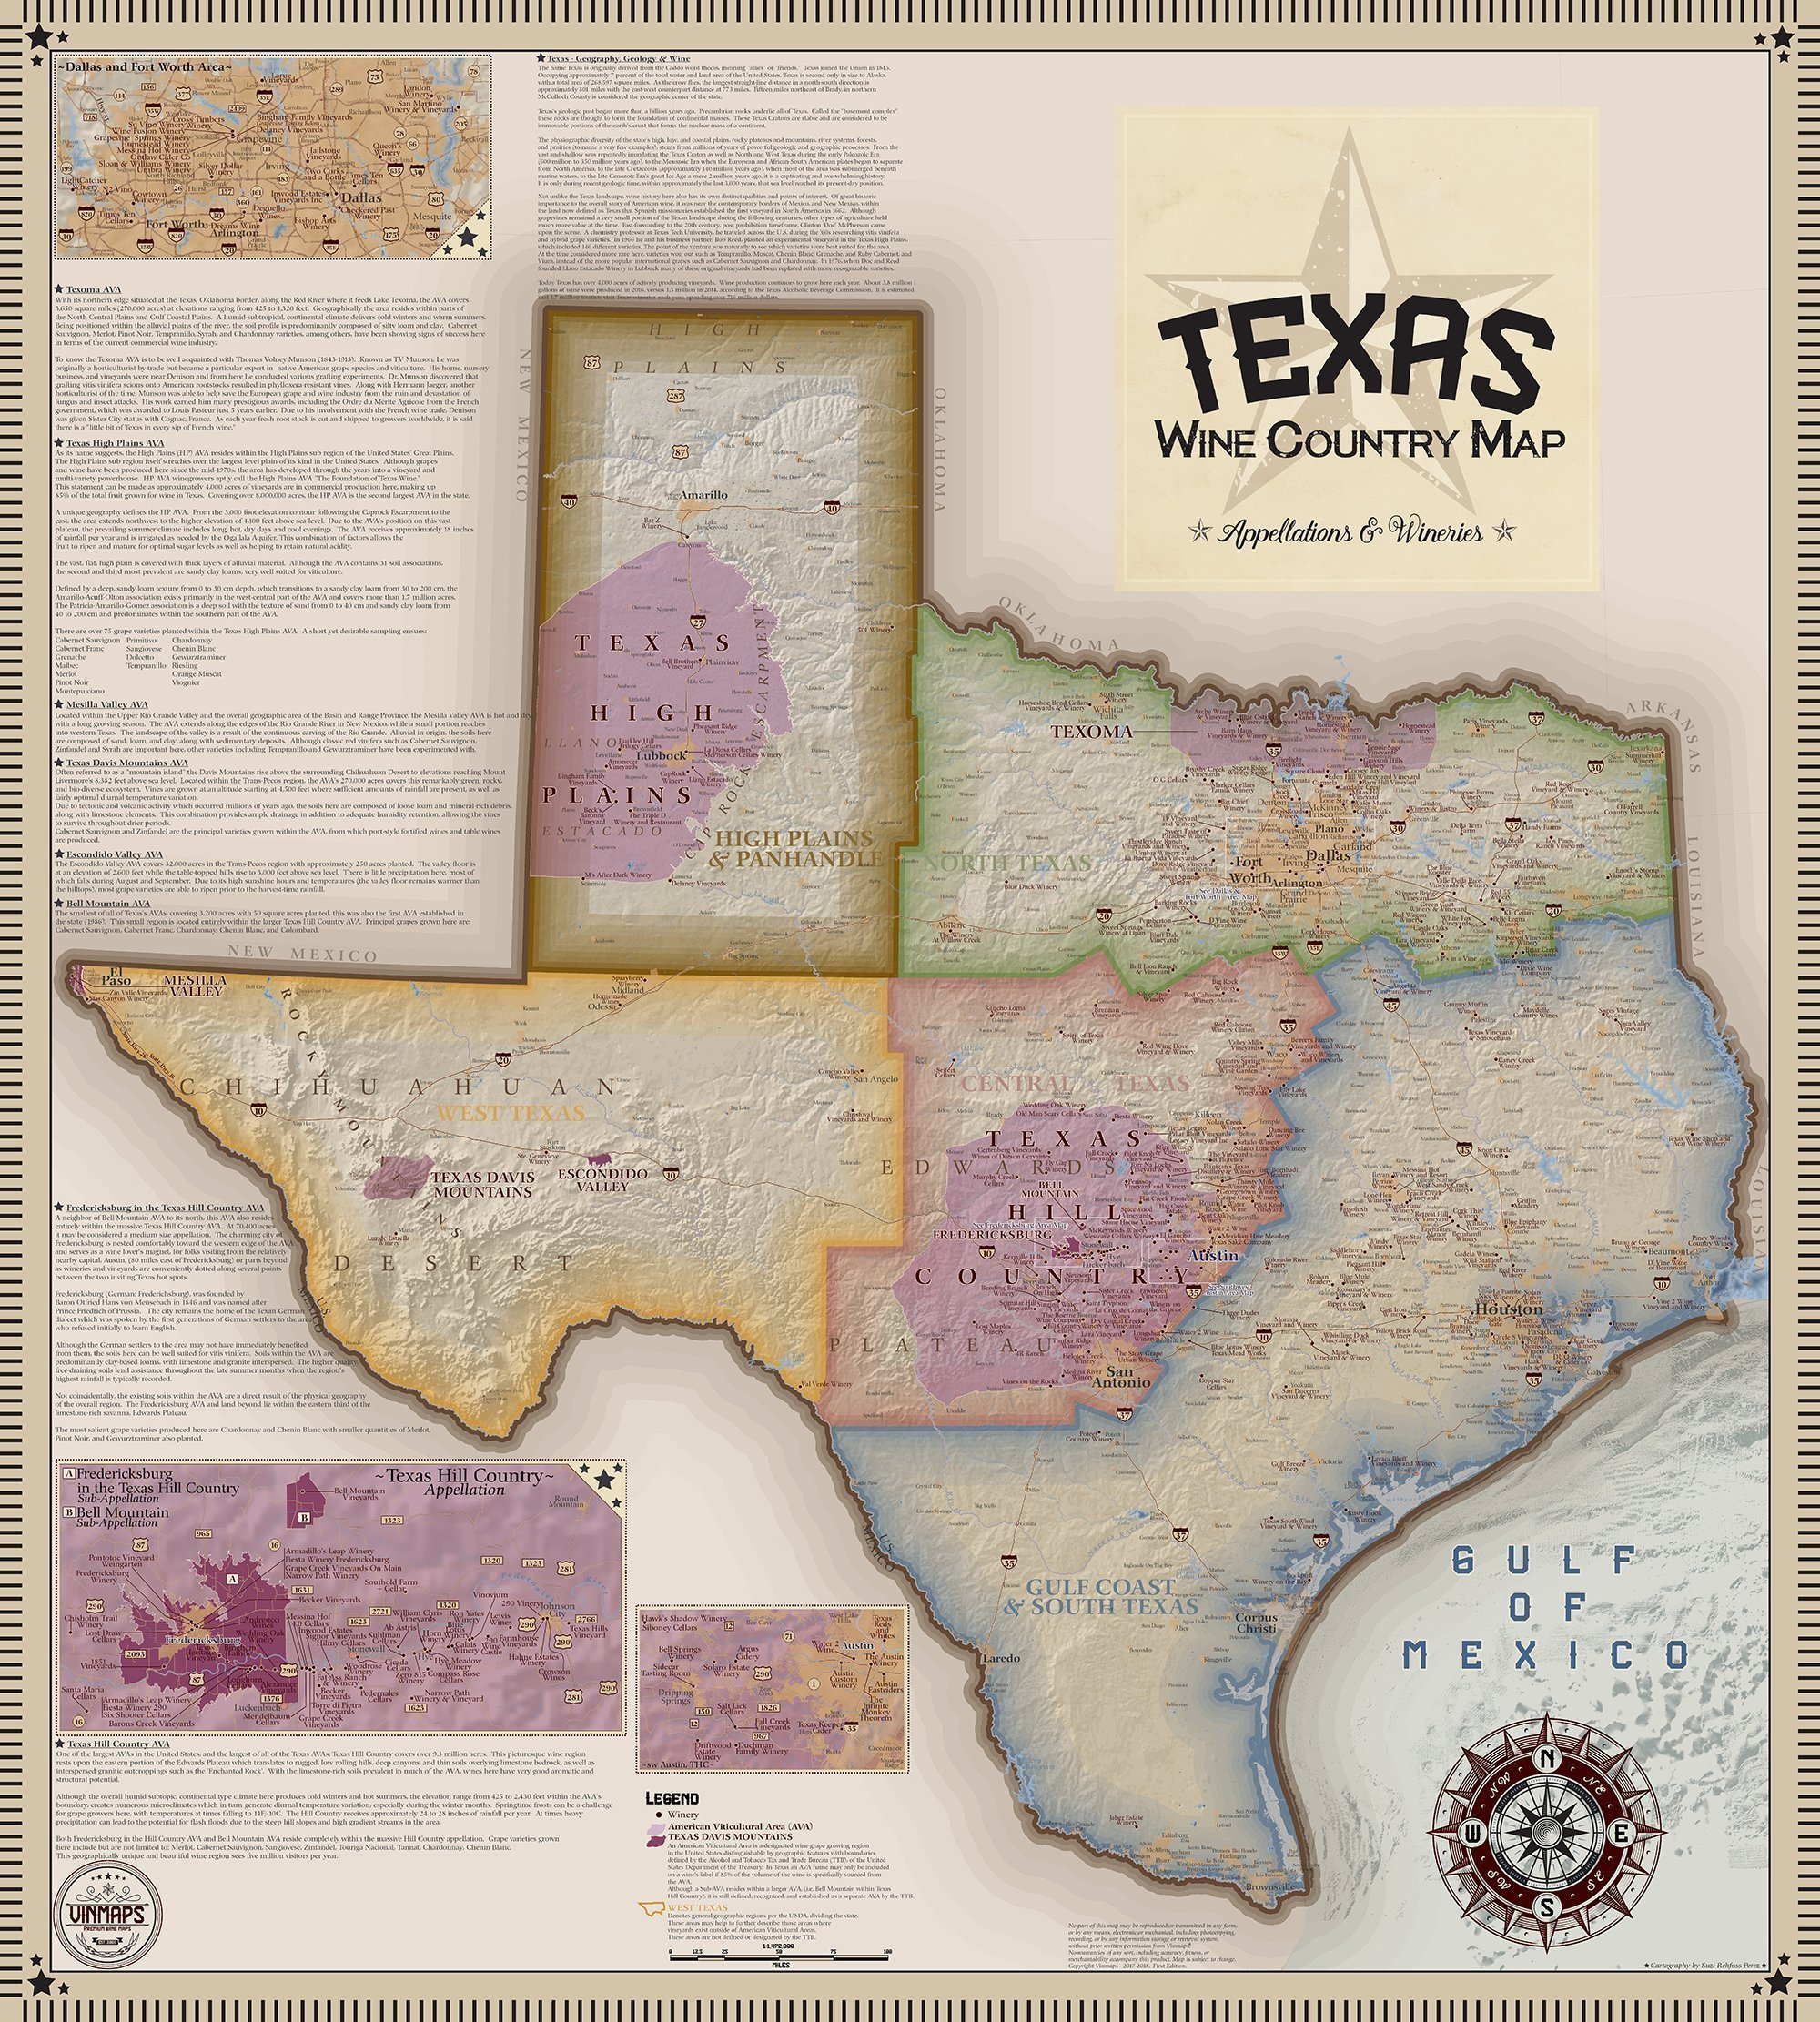 Texas Wine Country Map, Appellations & Wineries - Vinmaps® - Texas Wine Country Map